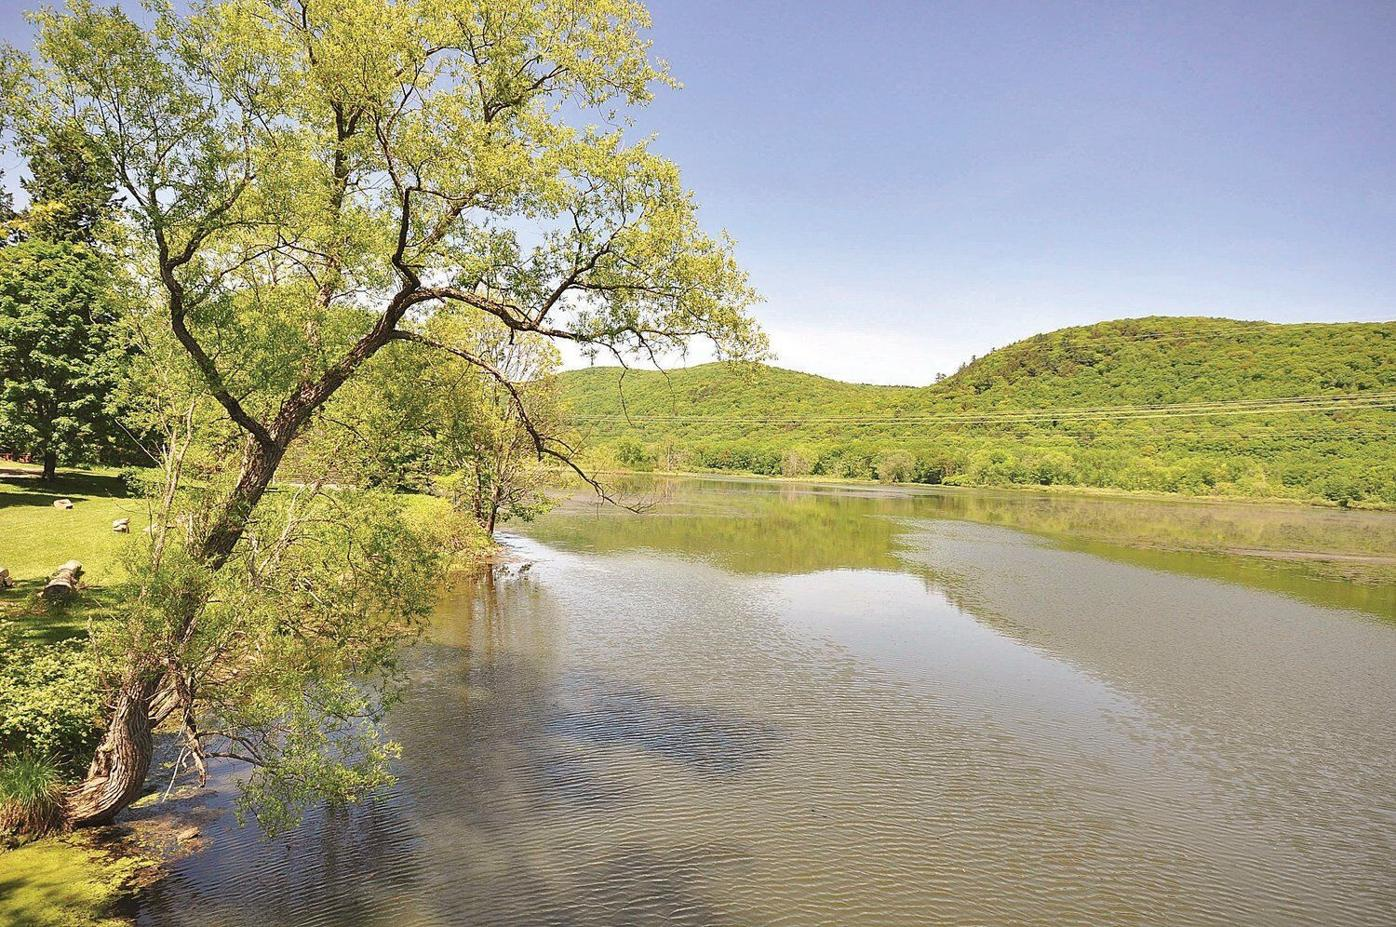 GE outlines planned Housatonic cleanup ahead of EPA order (copy)